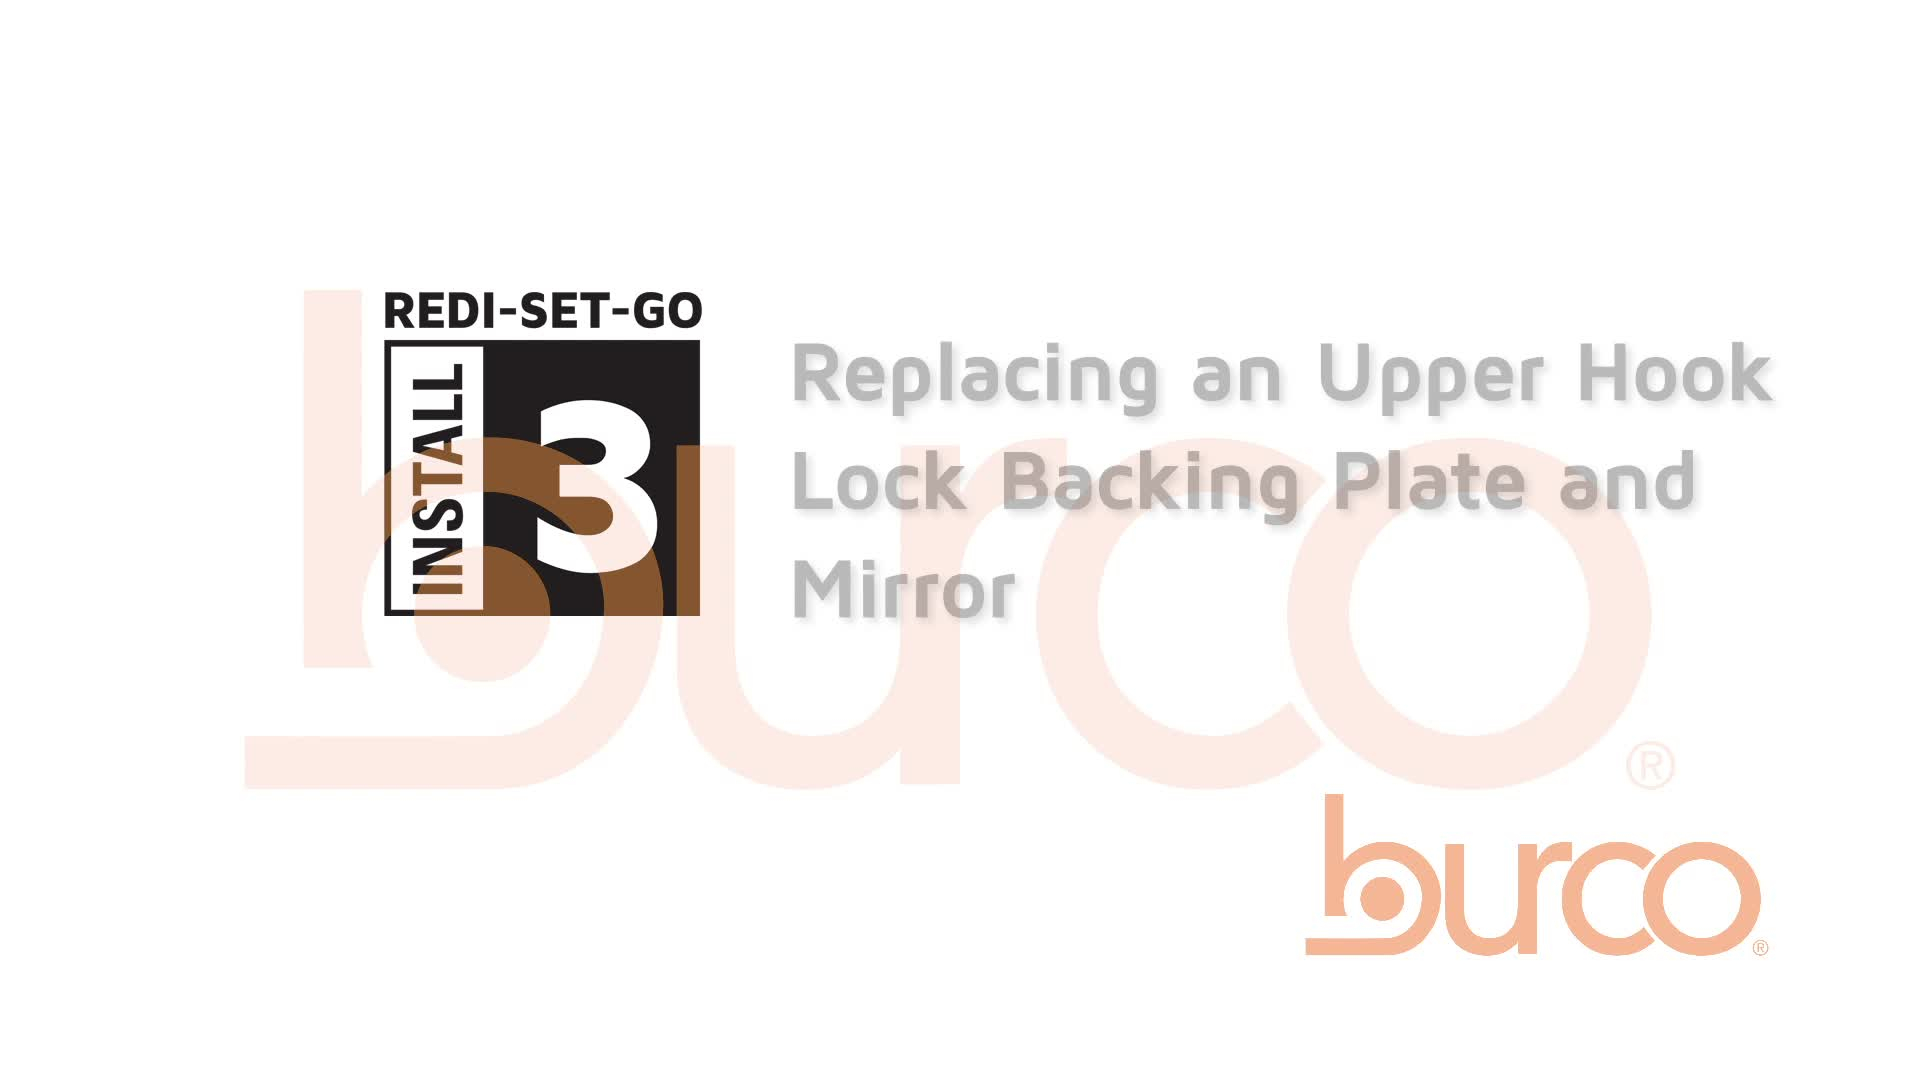 Replacement of the Upper Hook Lock Backing Plate and Mirror